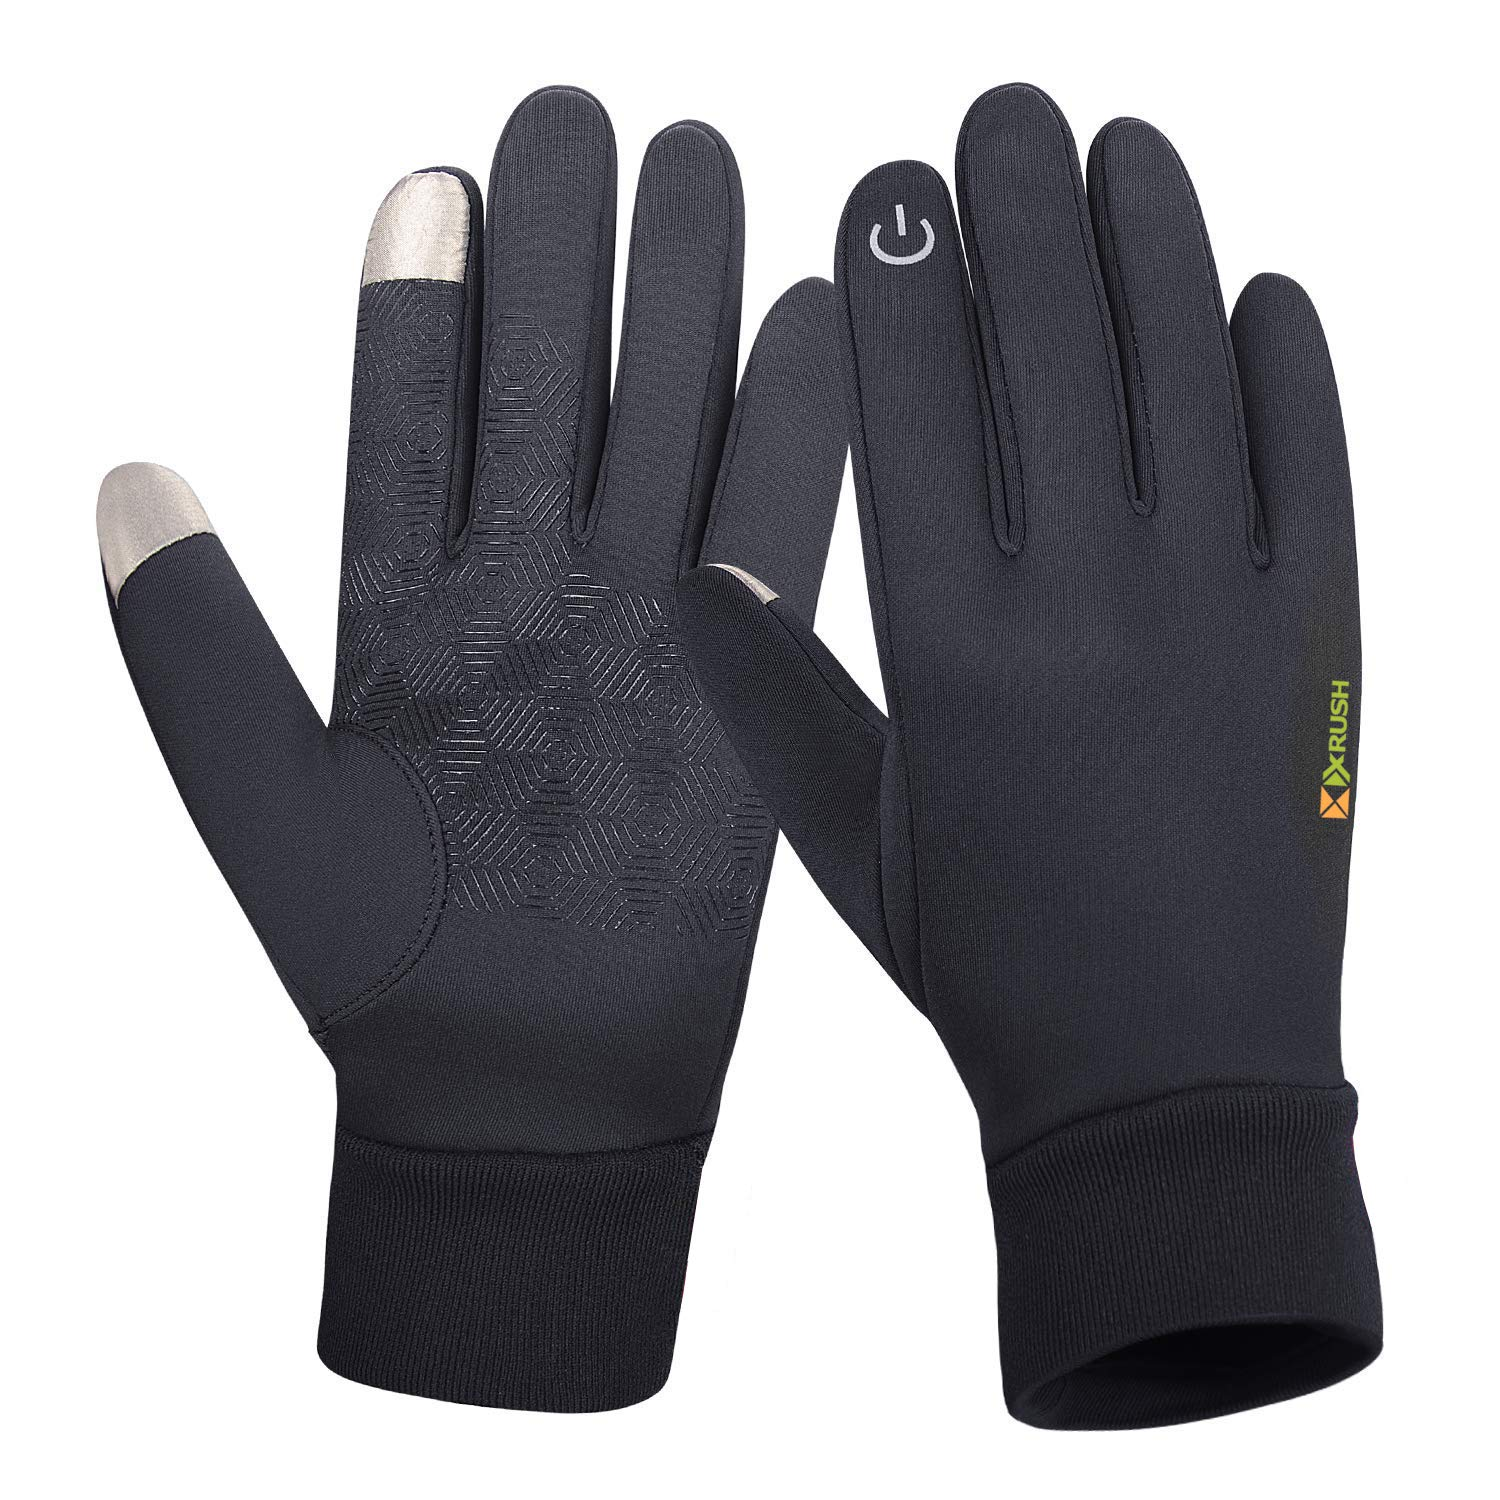 Winter Gloves Touch Screen Gloves Windproof Warm Gloves Cold Weather Running Gloves Driving Gloves for Women Men Cellphone Texting Non-Slip Lightweight for Cycling,Running (Black, X-Large)